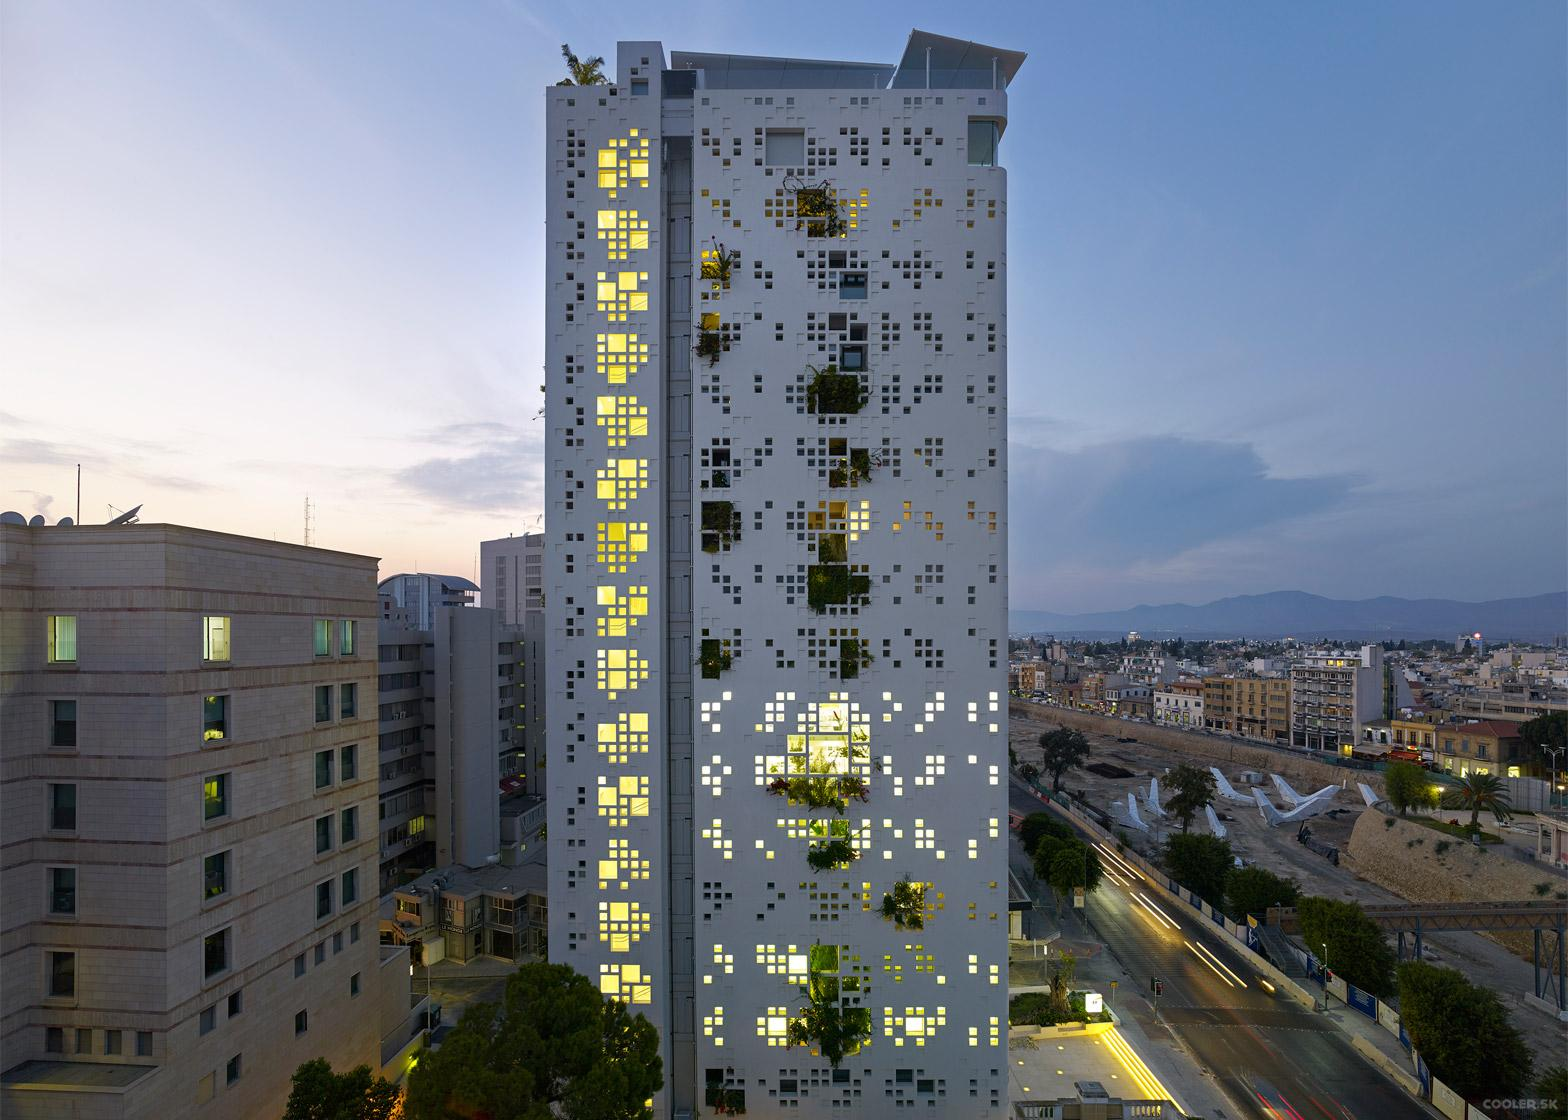 tower-25-jean-nouvel-nicosia-cyprus-pixellated-concrete_dezeen_1568_7